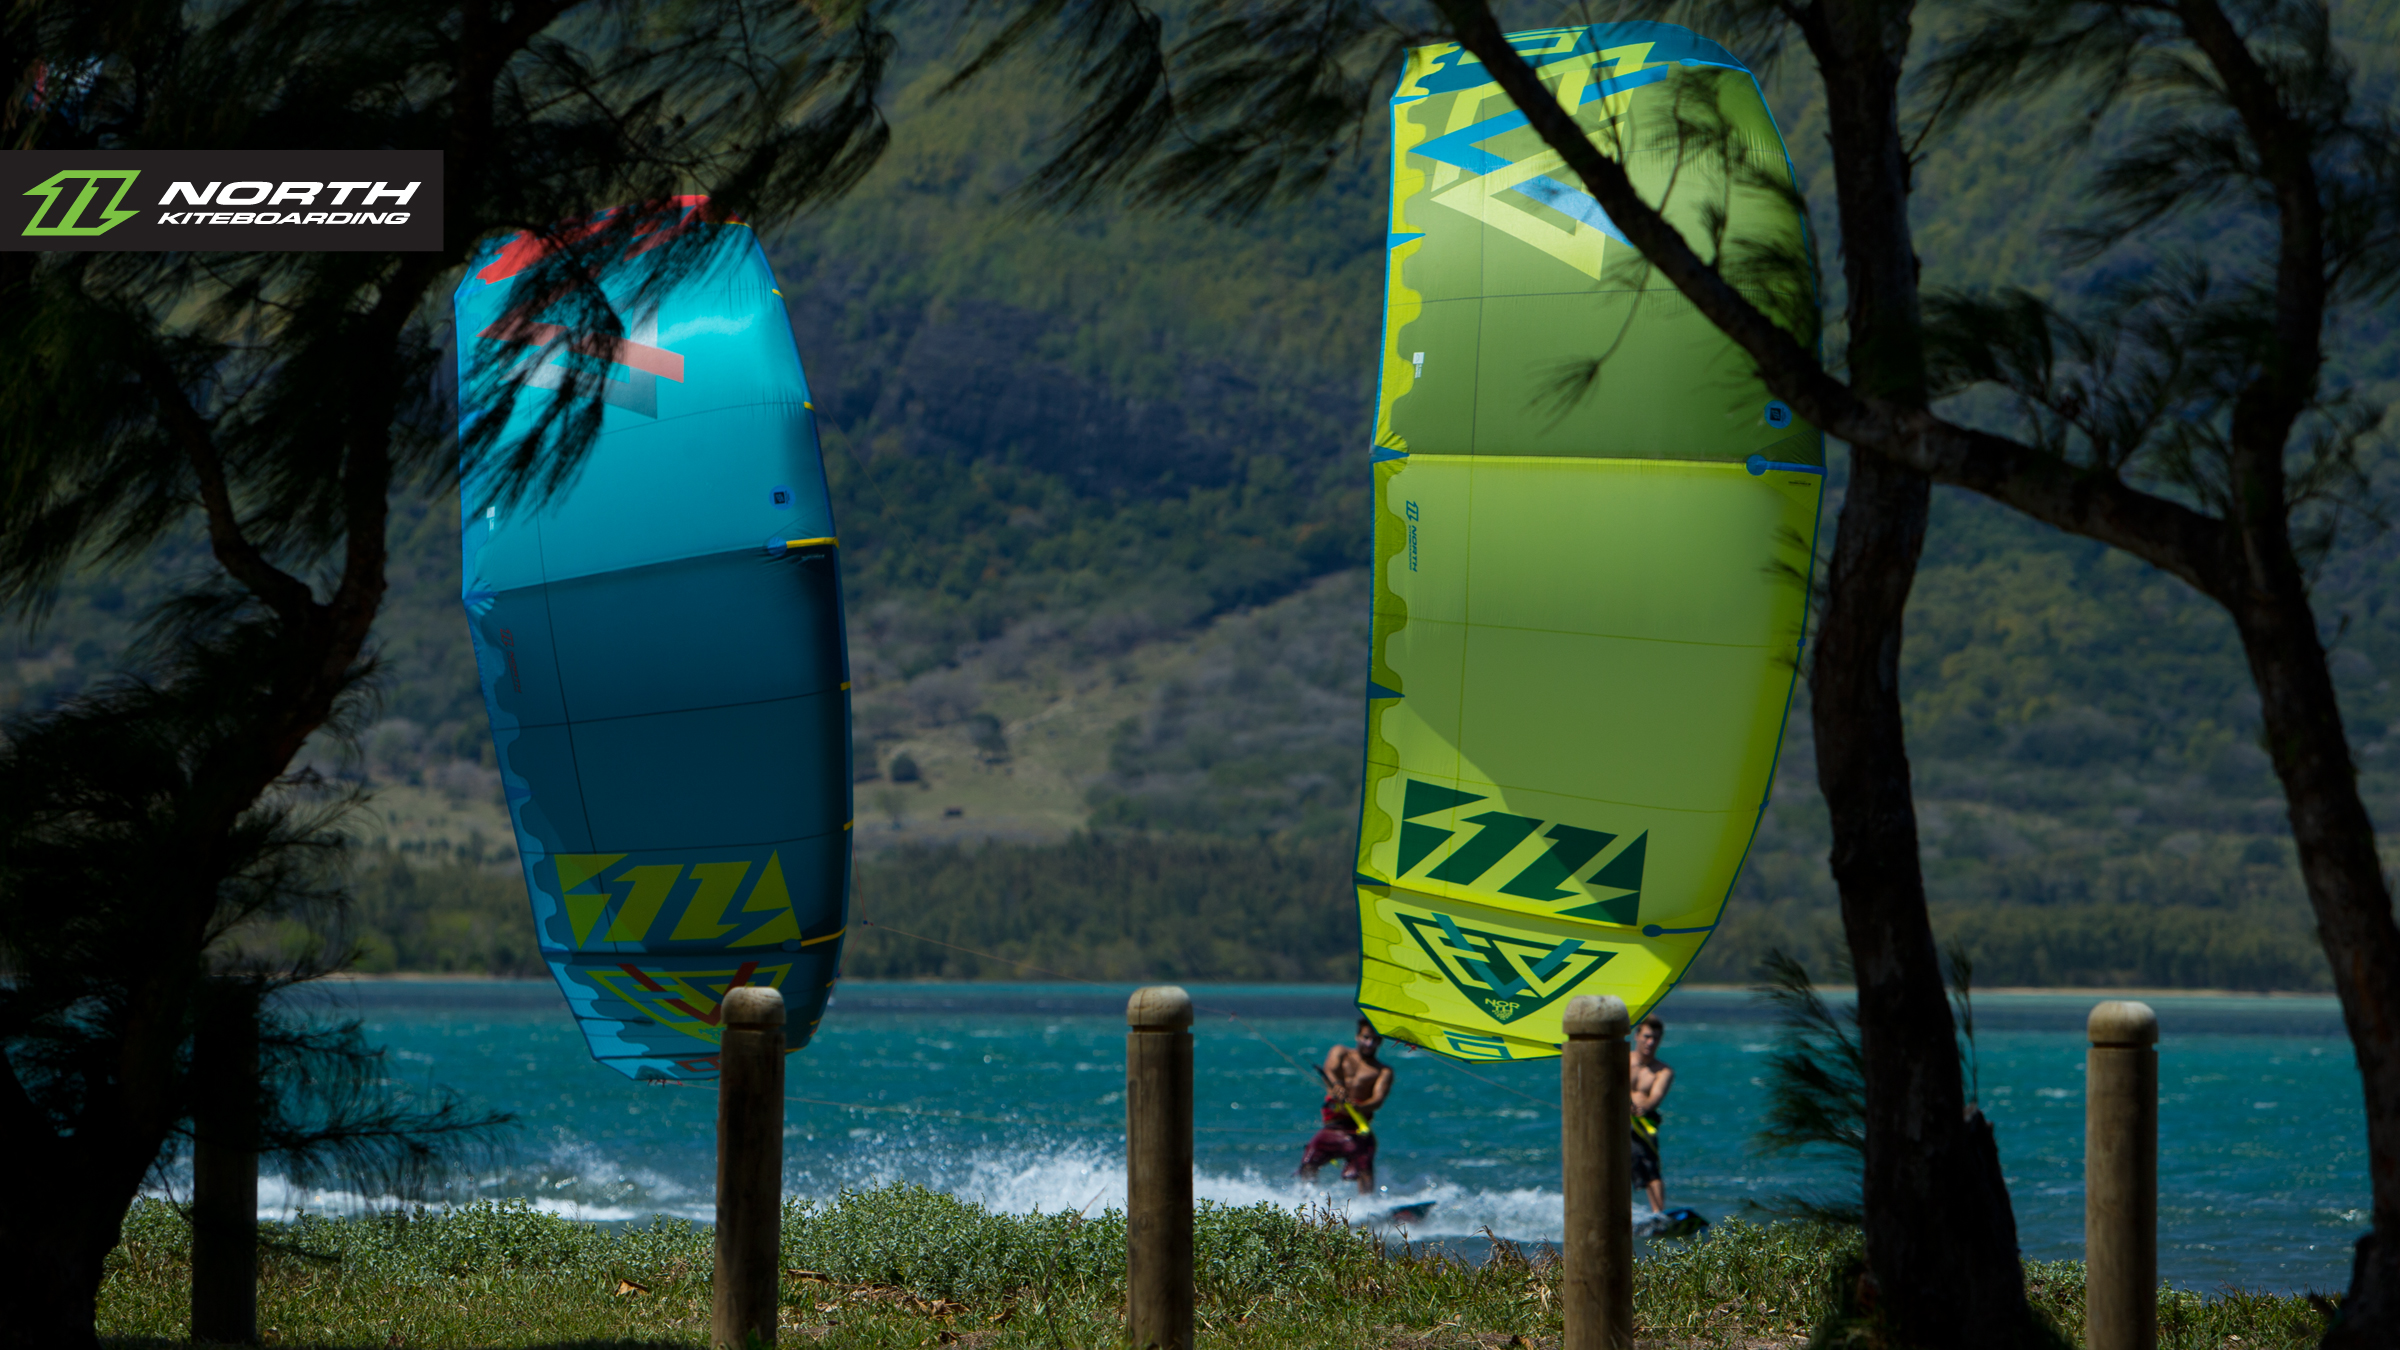 kitesurf wallpaper image - North Evo 2015 duo cruising between the trees - kitesurfing - in resolution: High Definition - HD 16:9 2400 X 1350